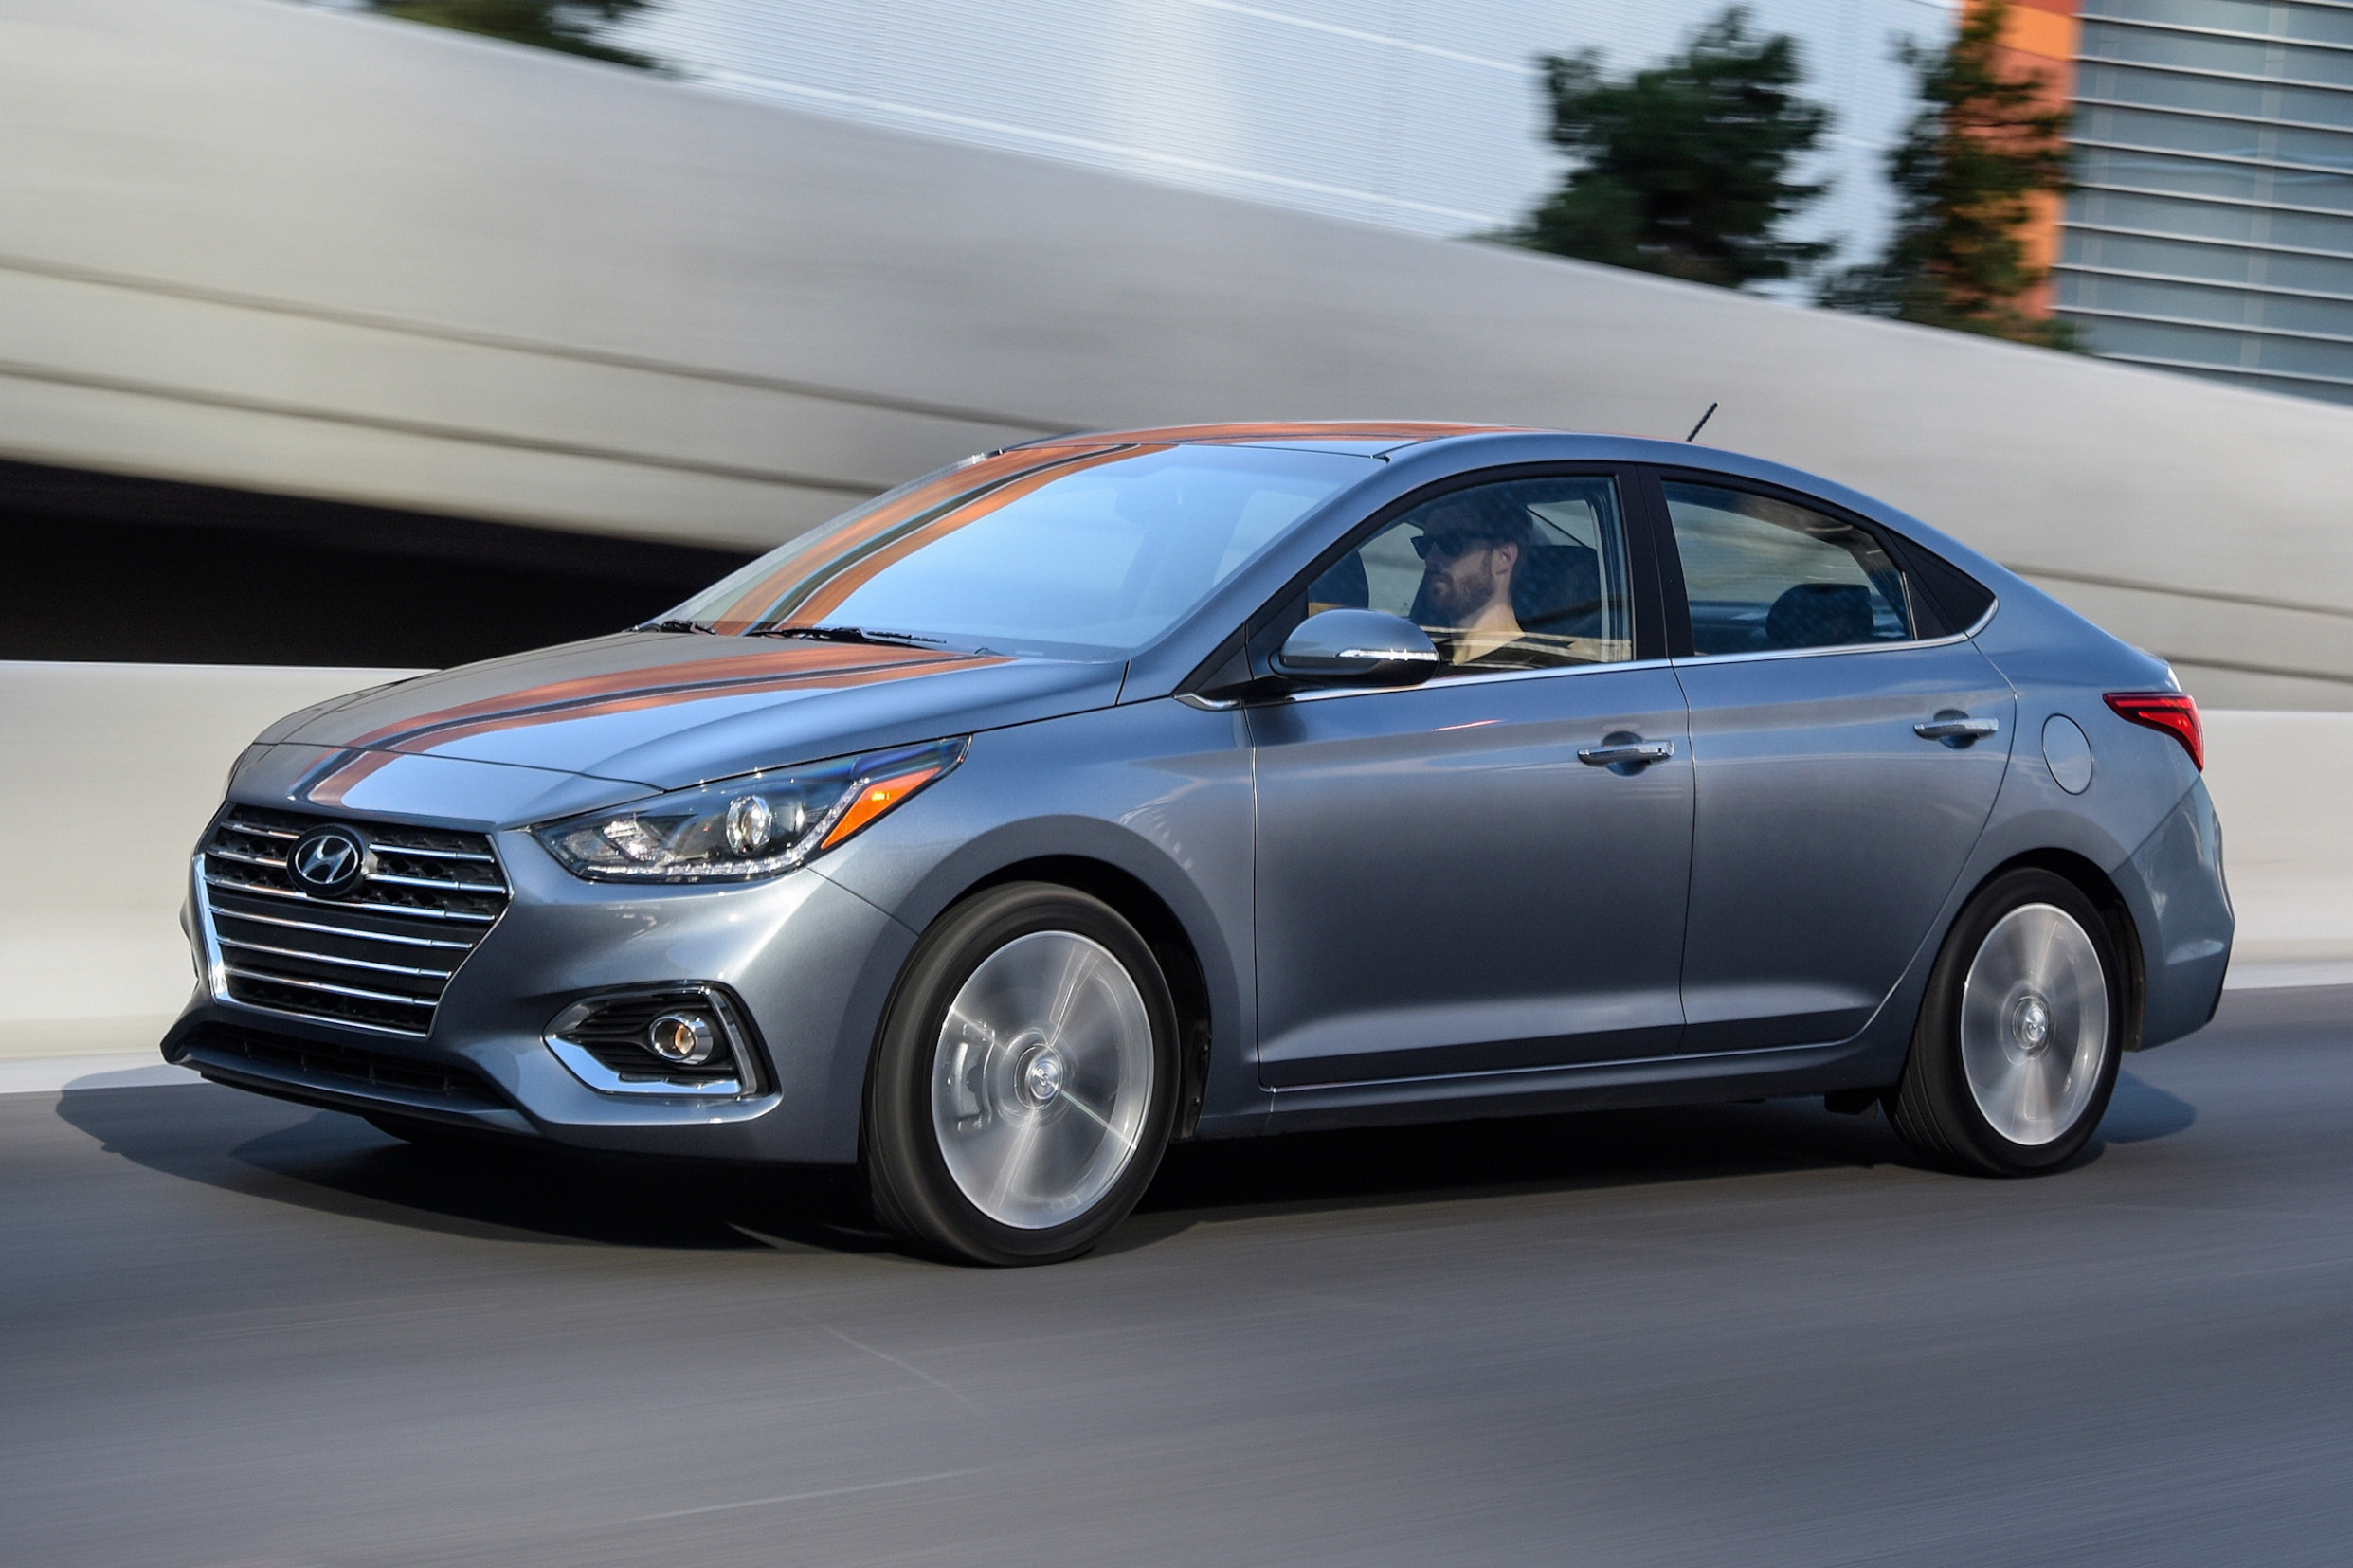 Hyundai Accent gets a new heart for 8 - Auto News